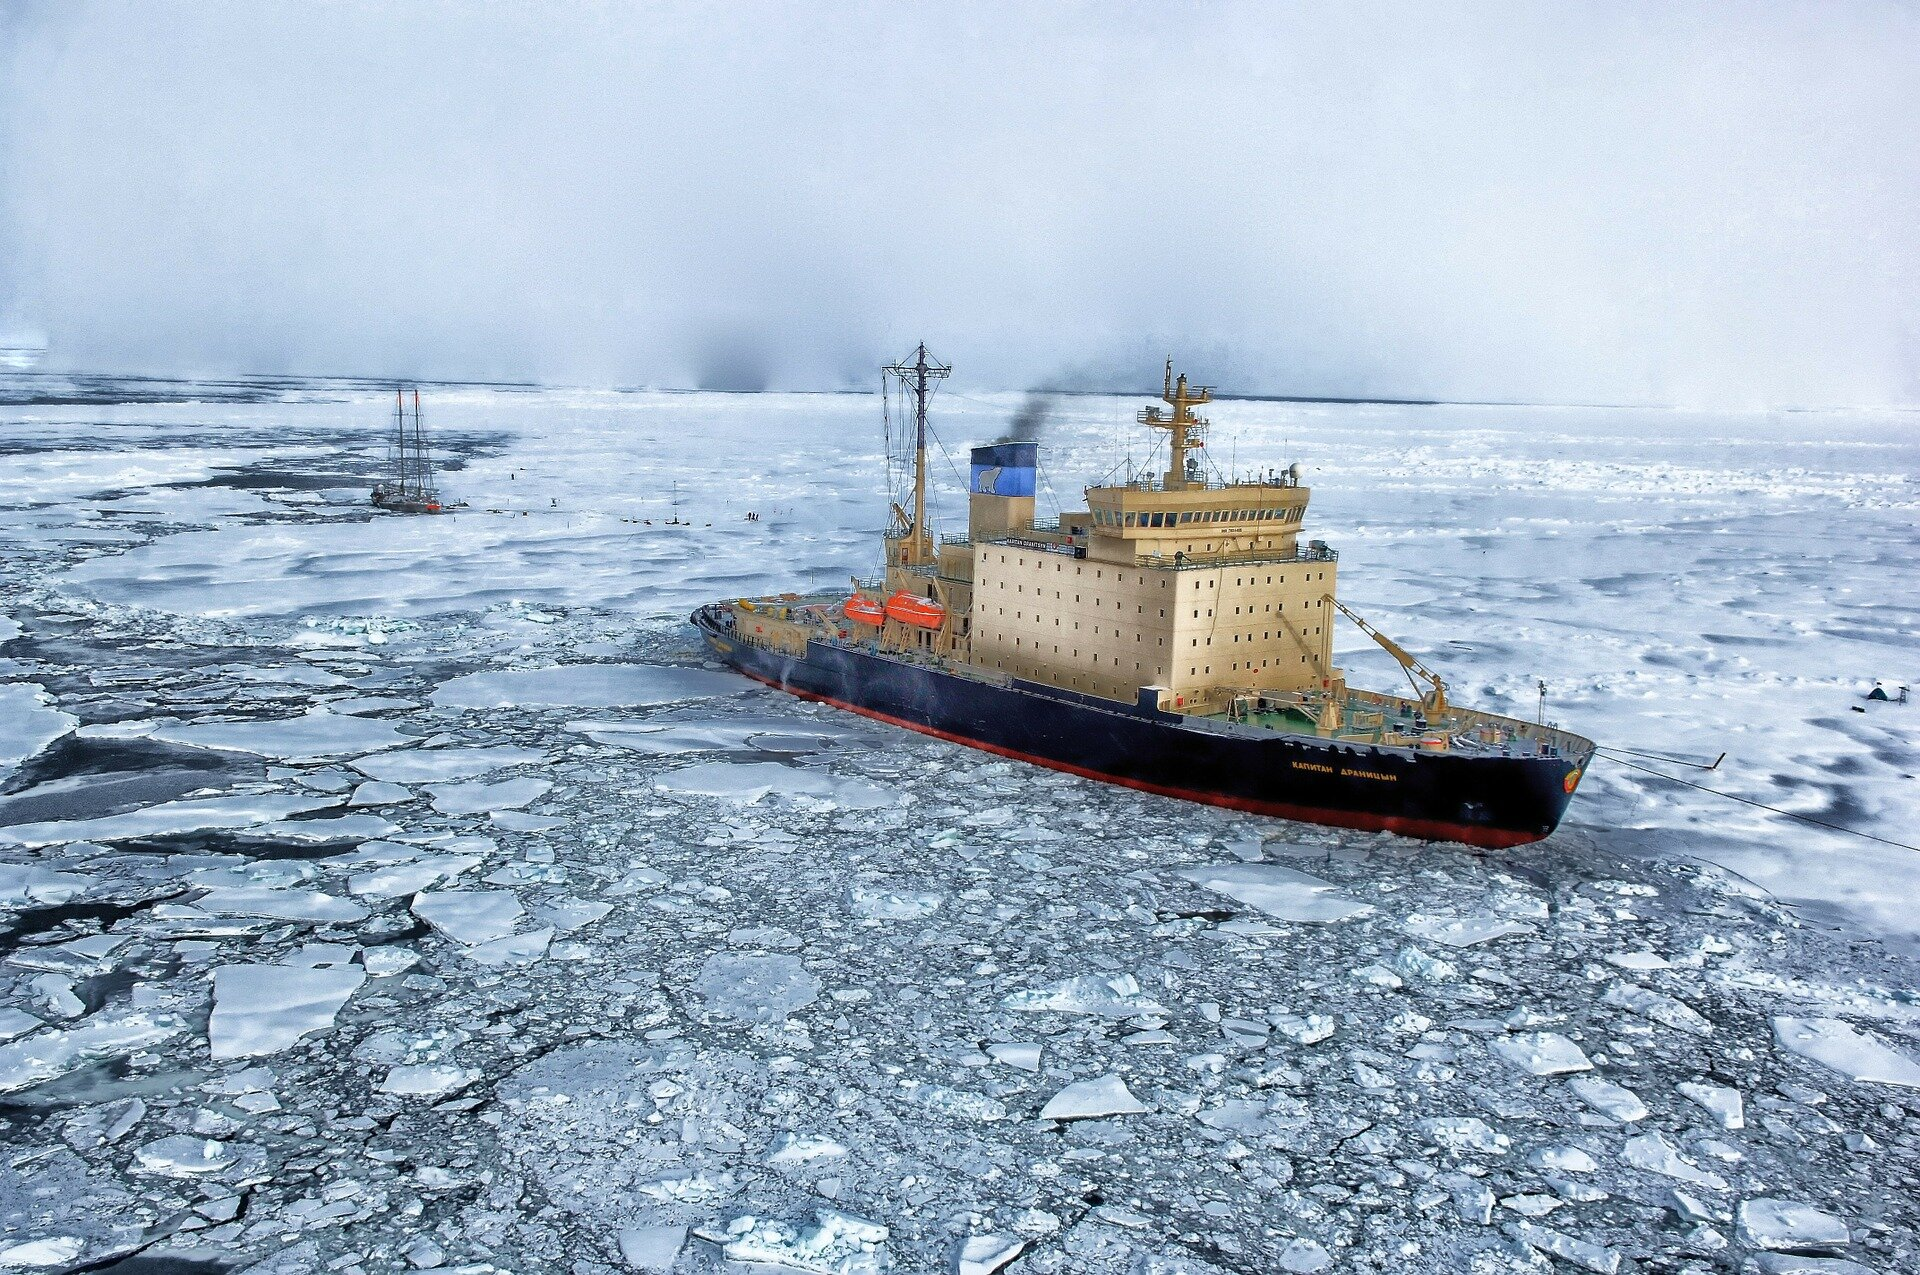 A 'regime shift' is happening in the Arctic Ocean, scientists say